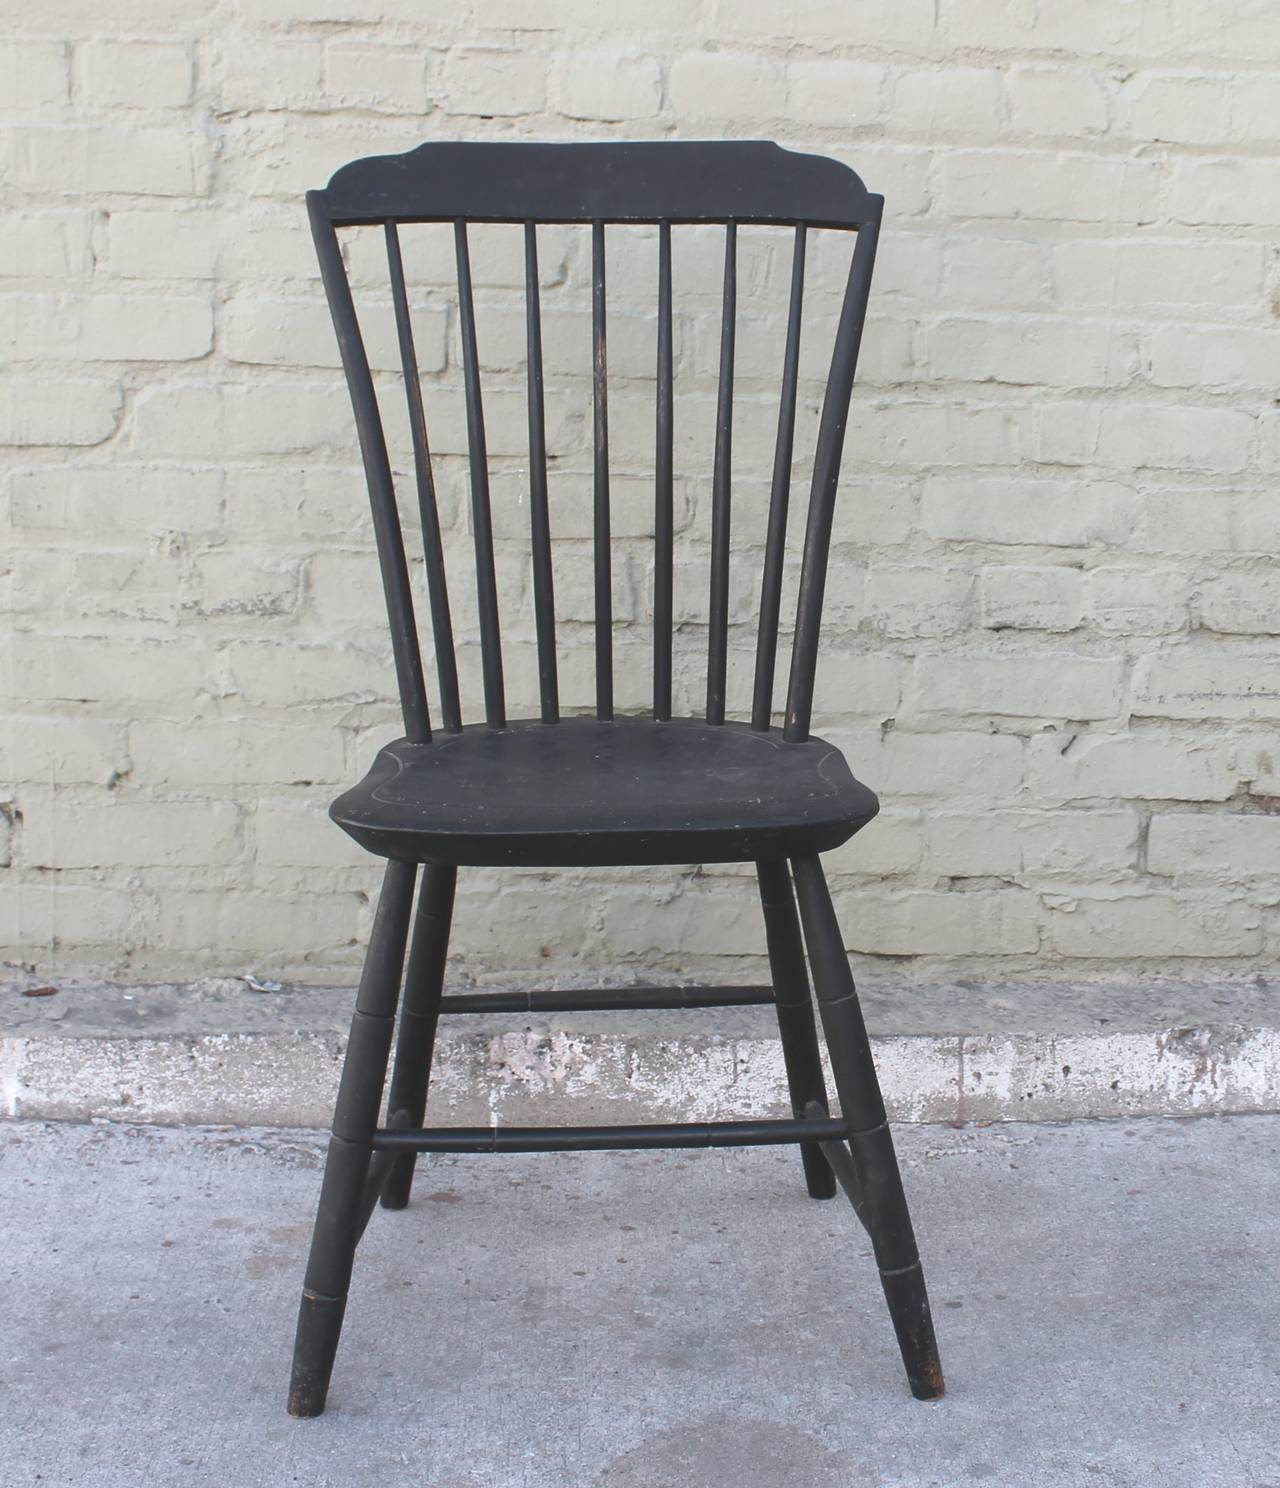 Black Windsor Chair Original Black Painted Step Down New England Windsor Chair